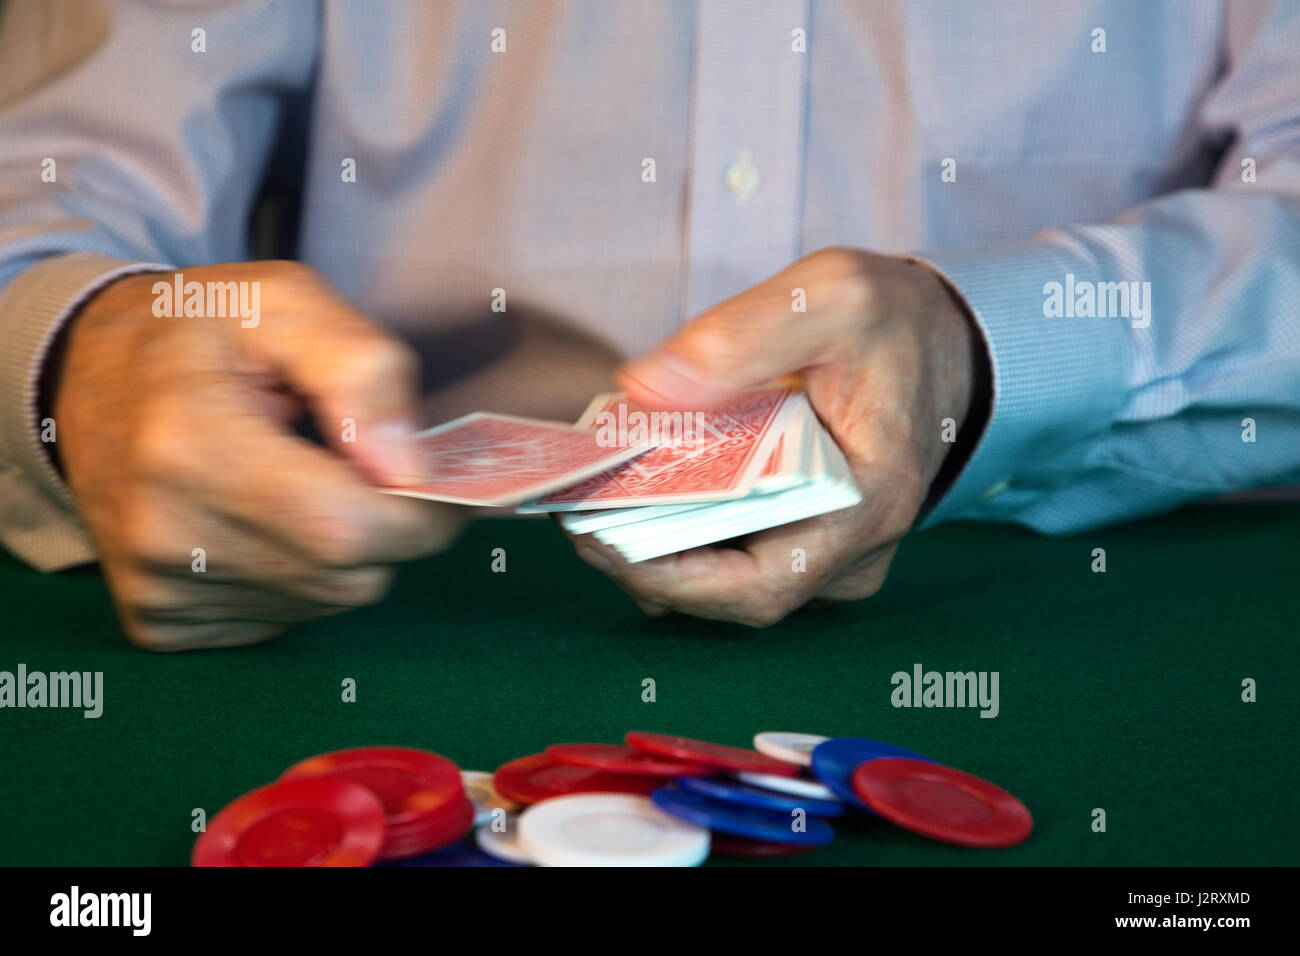 Man Dealing Cards for Poker Game - Stock Image